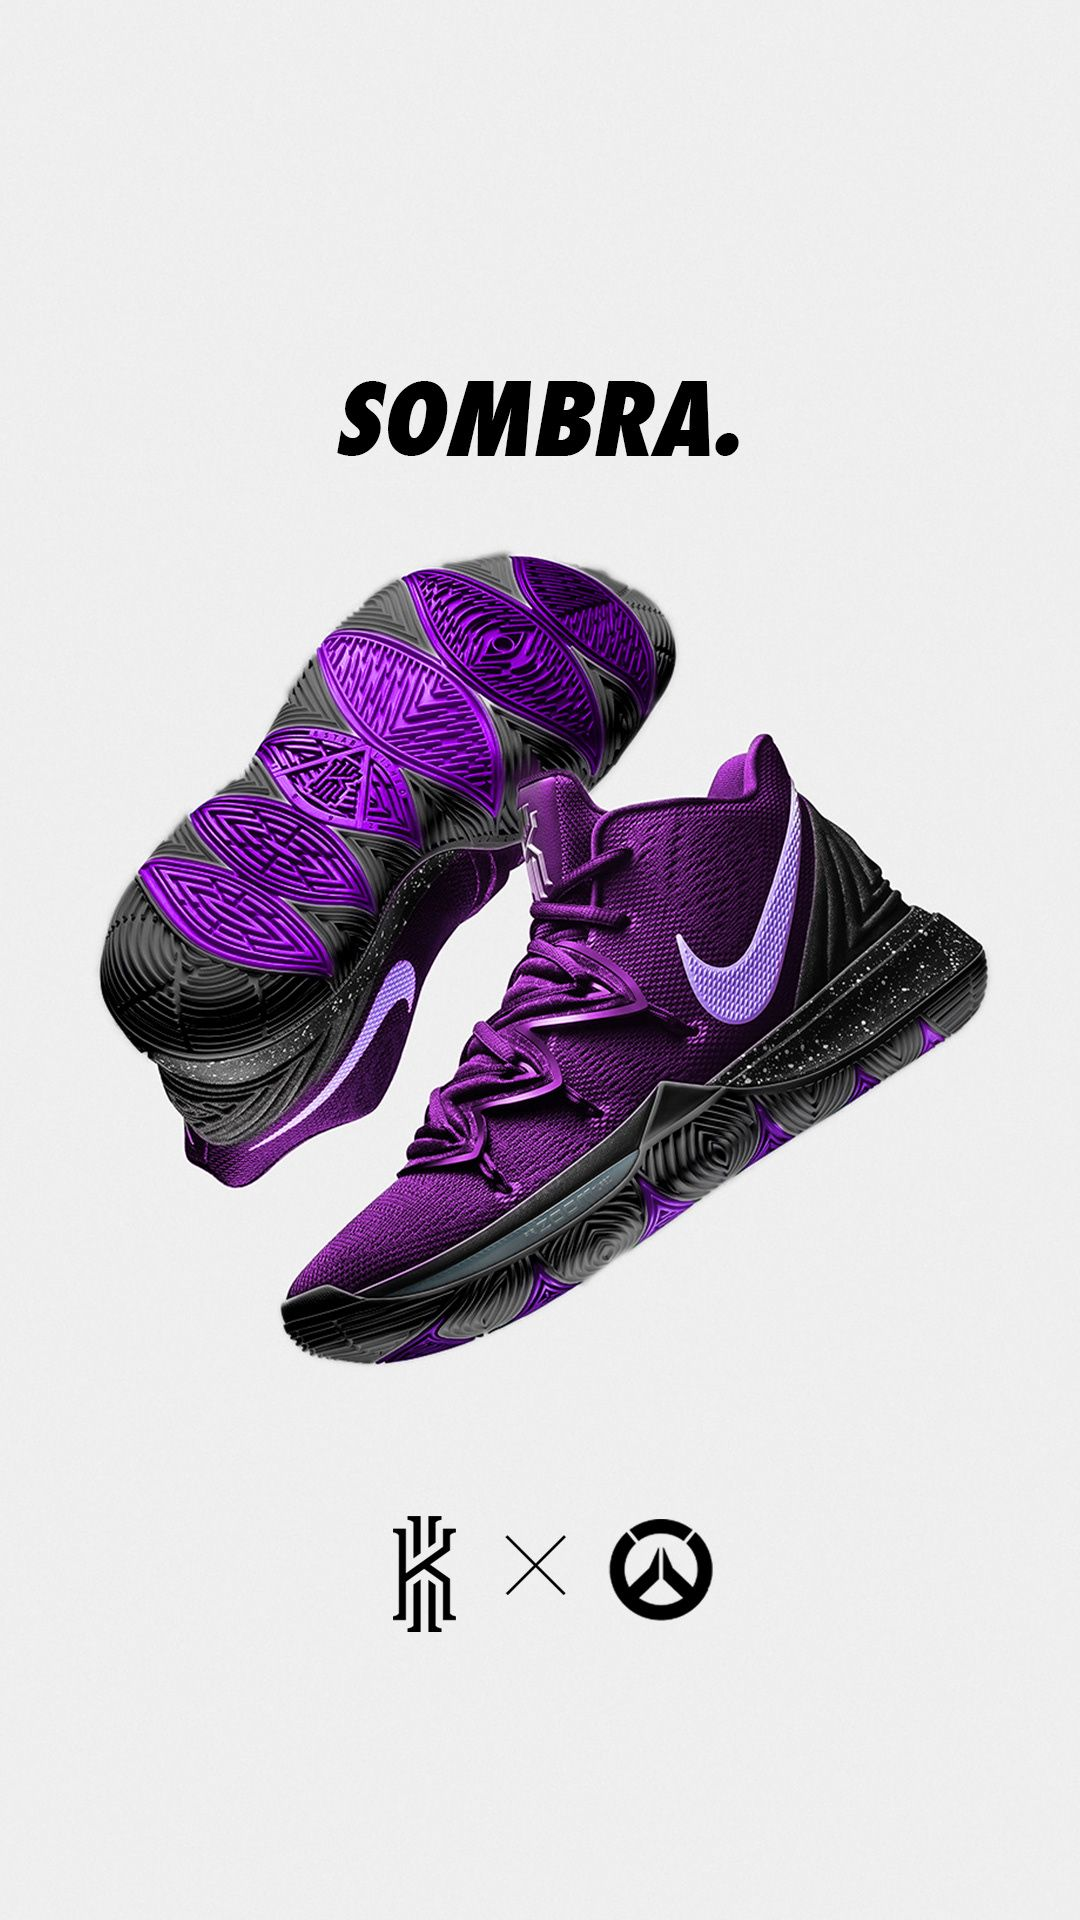 03be2552fda2 Nike Kyrie 5 X Overwatch Concepts on Behance